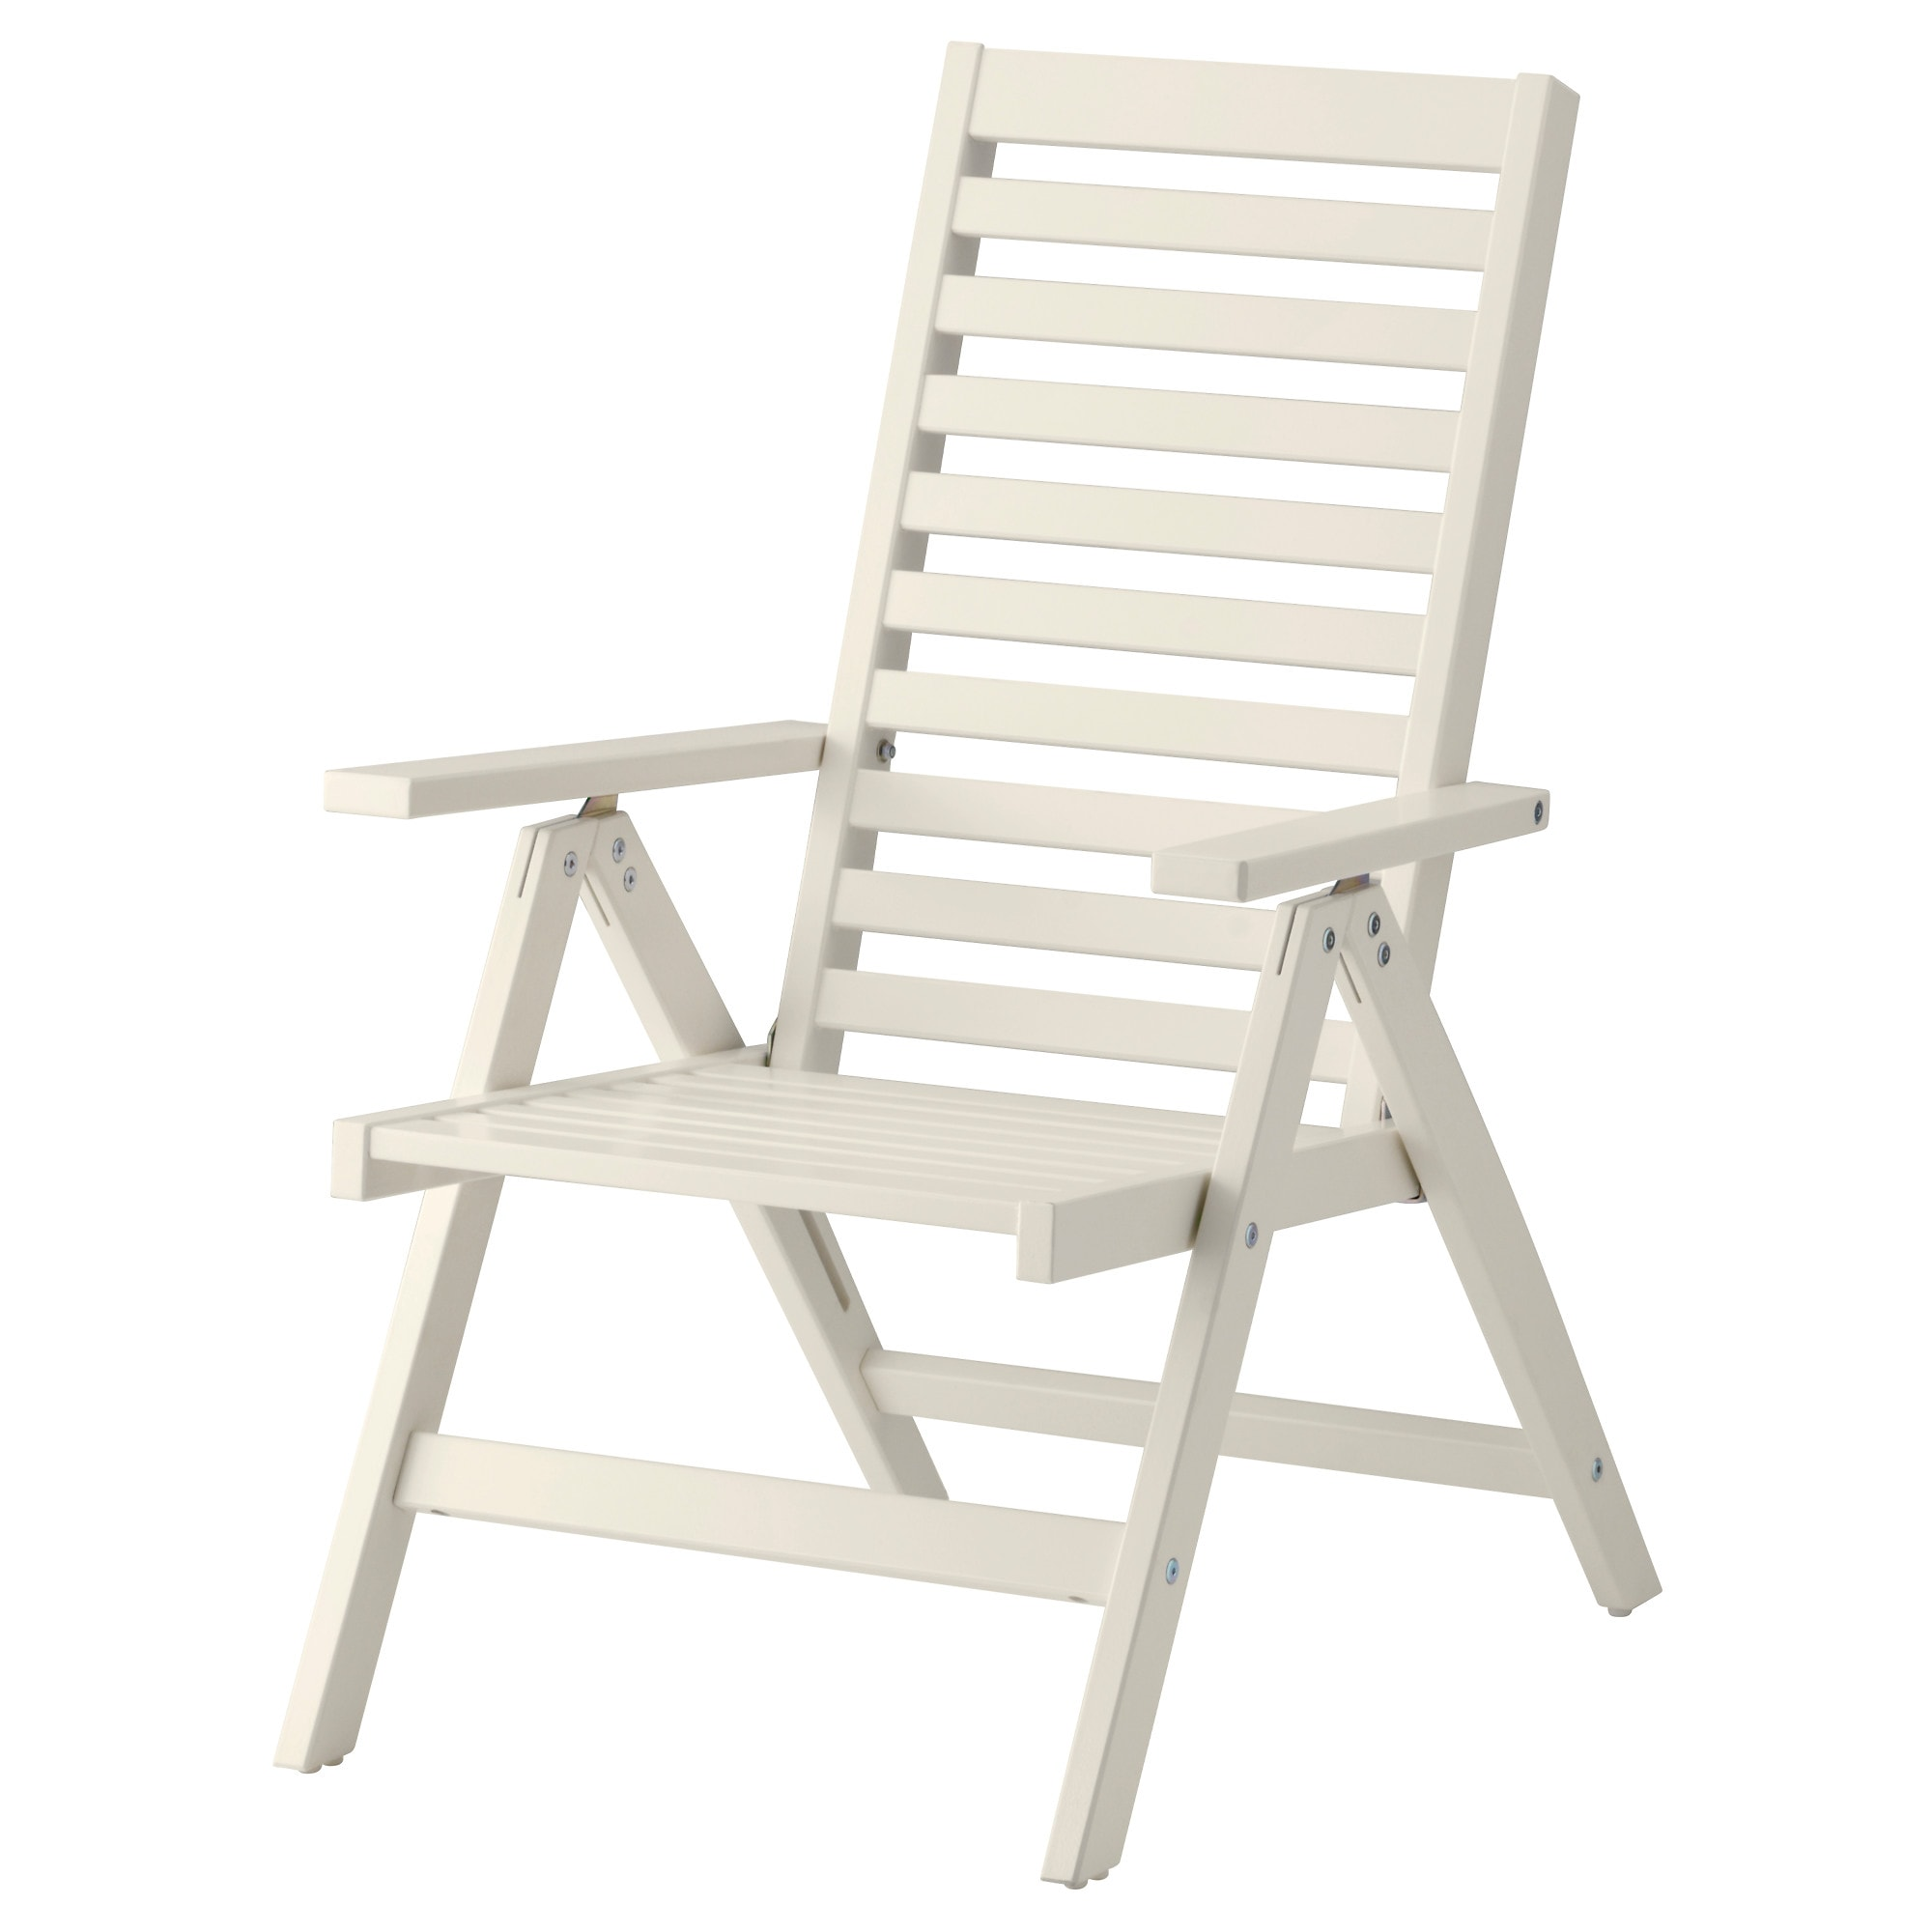 """PPLAR– Reclining chair outdoor foldable white IKEA"